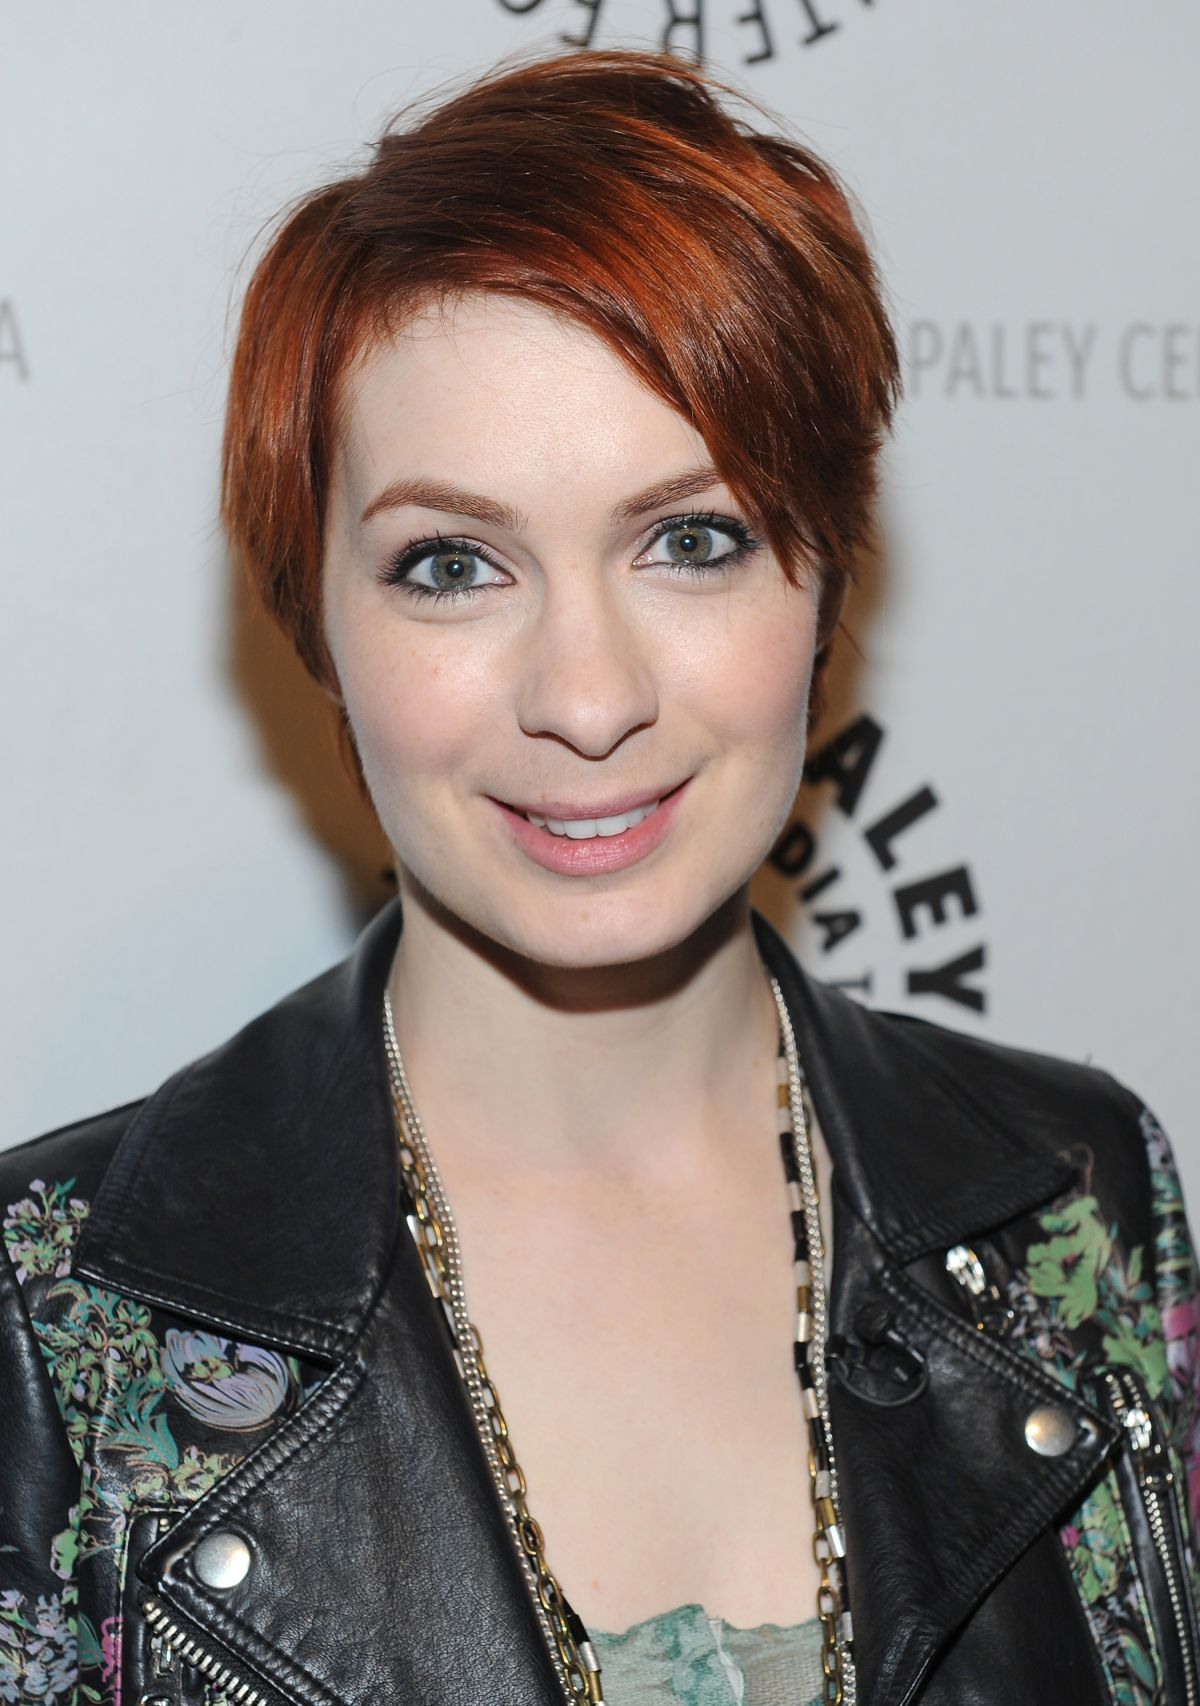 FELICIA DAY at Paleyfest 2014 Honoring Agents of S.H.I.E.L.D. in Hollywood